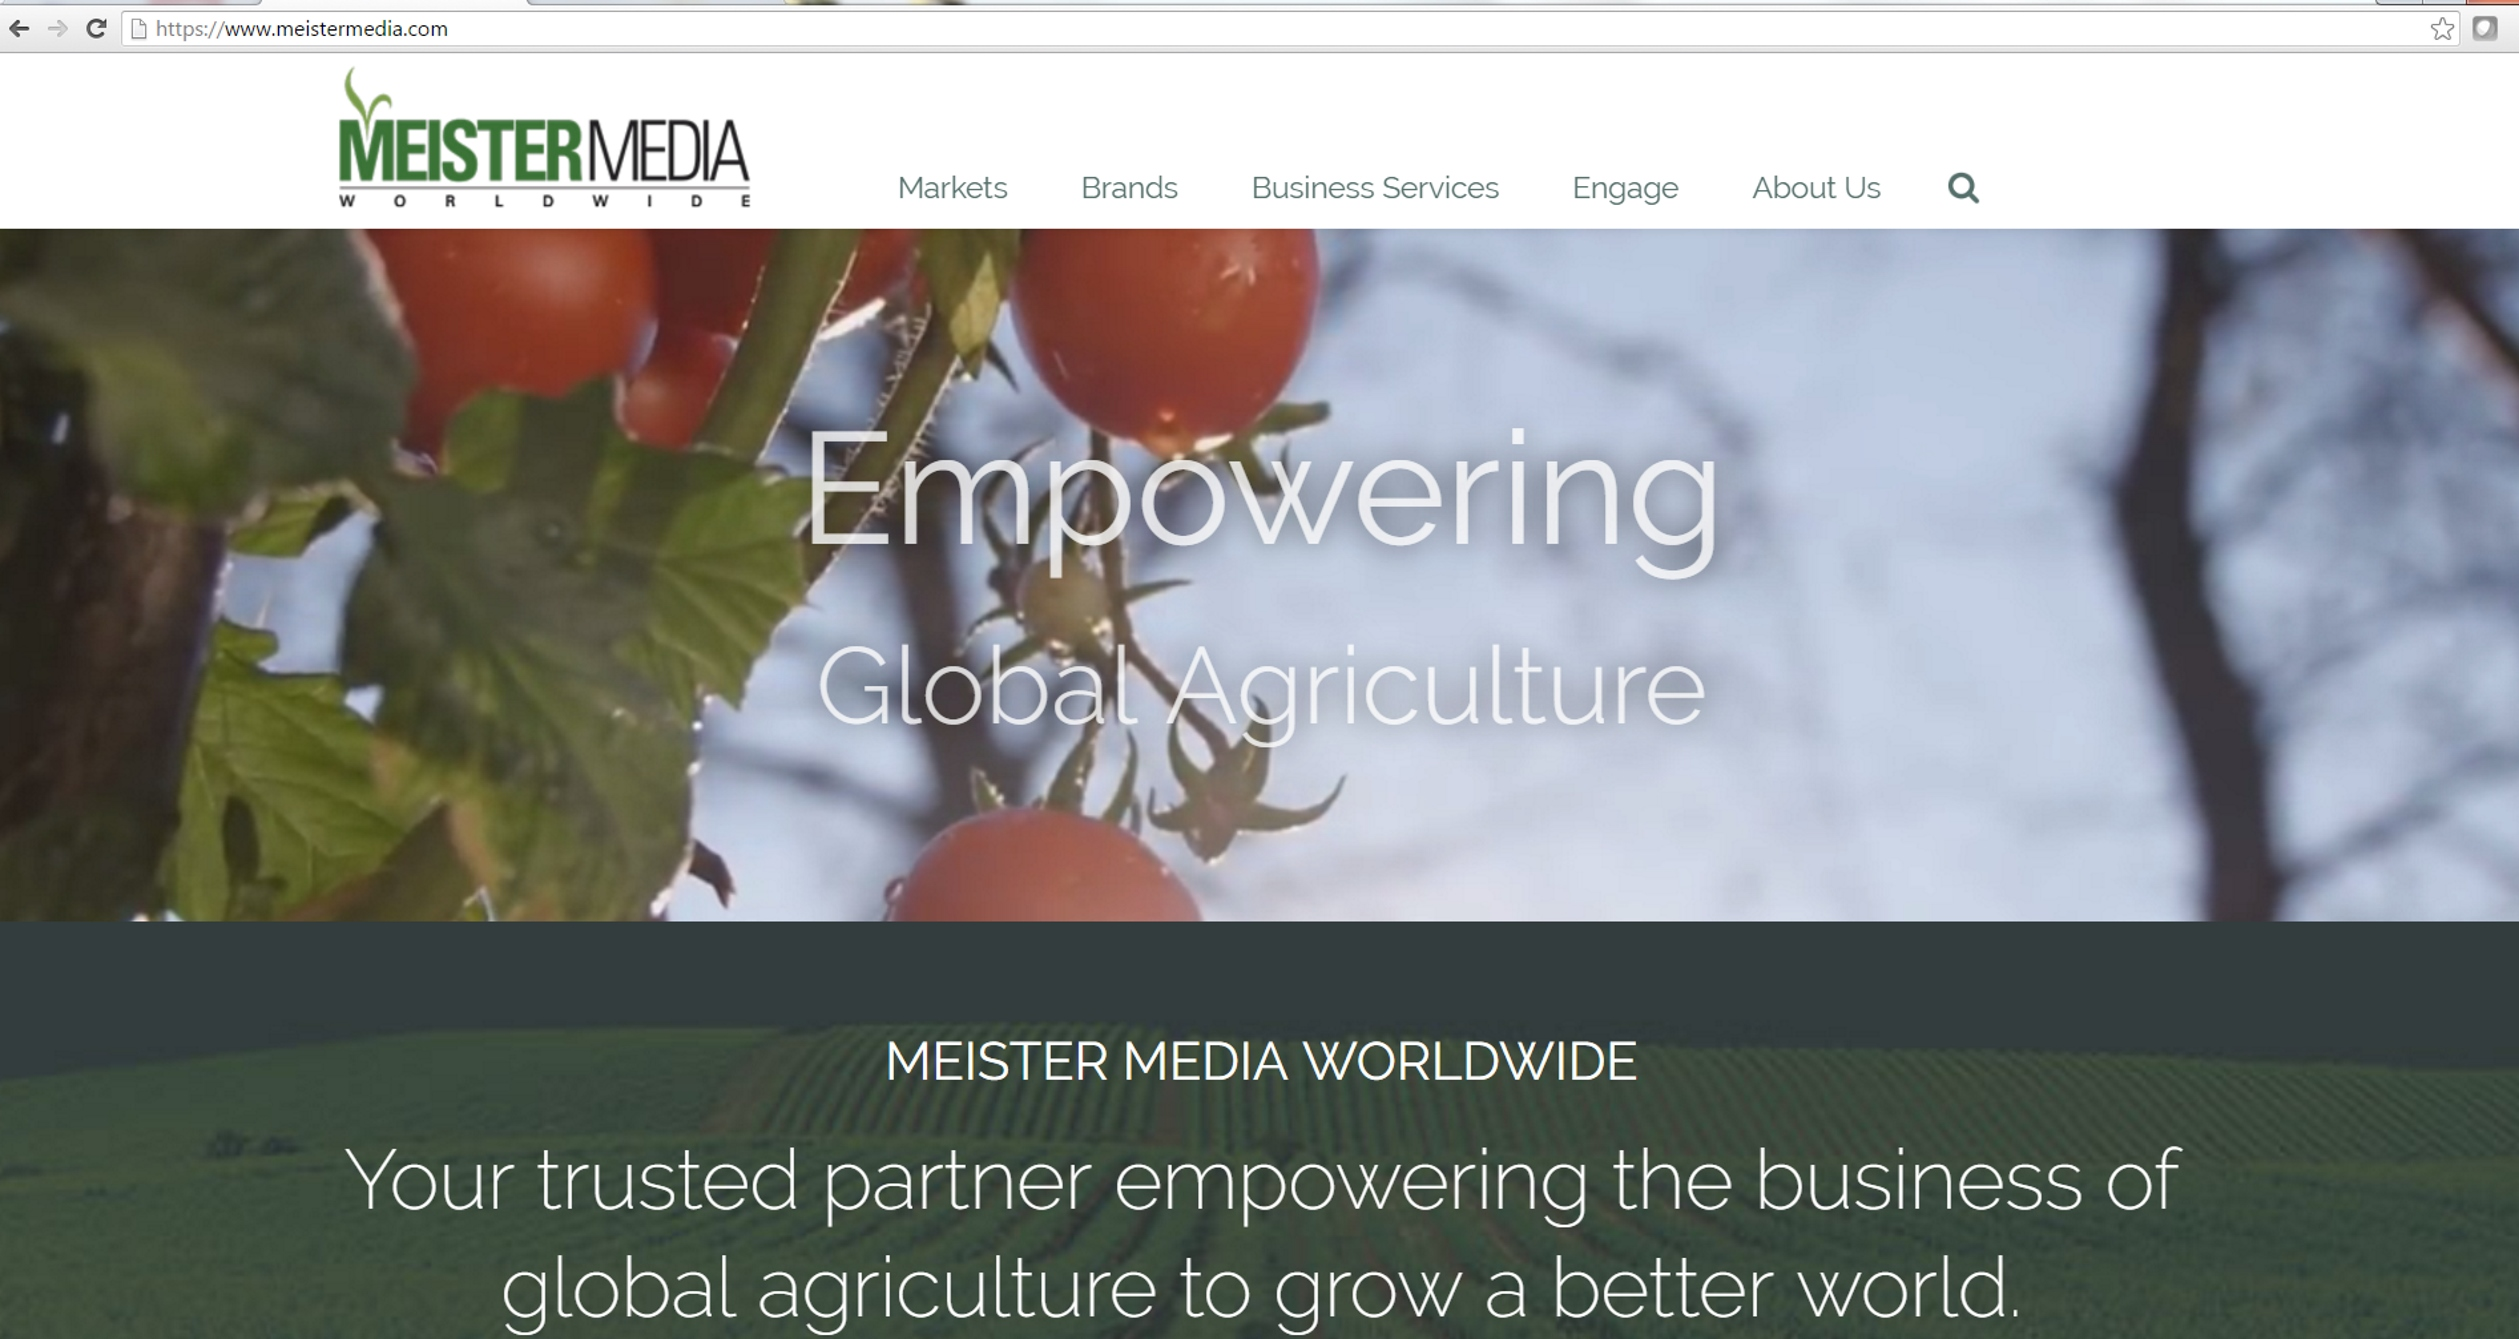 screenshot pdh meistermedia dot com tomatoes